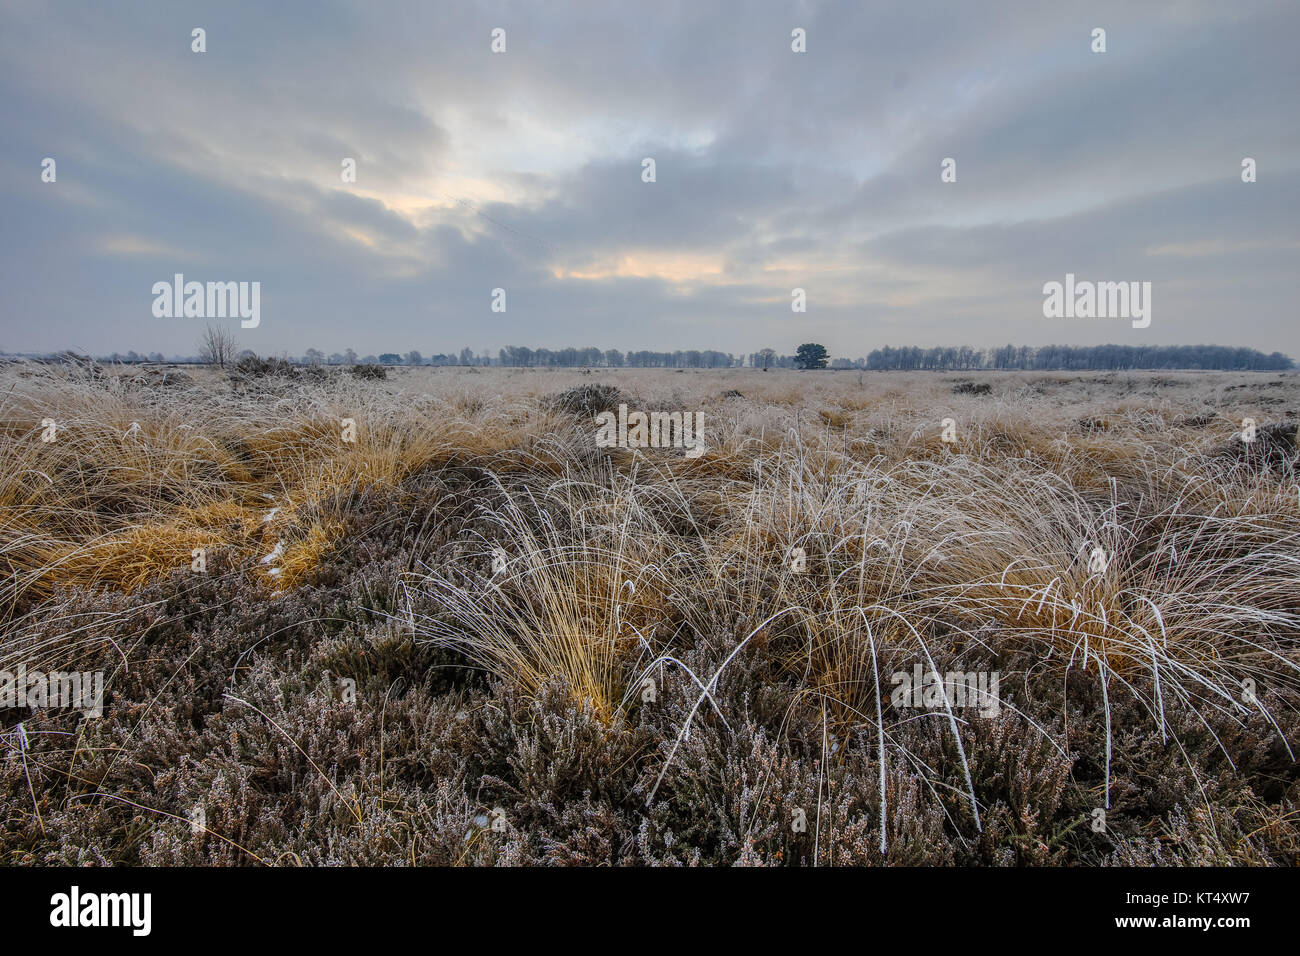 Winter morning sunrise over clumps of tussock sods with hoarfrost in balloerveld nature reserve with frosty heathland - Stock Image